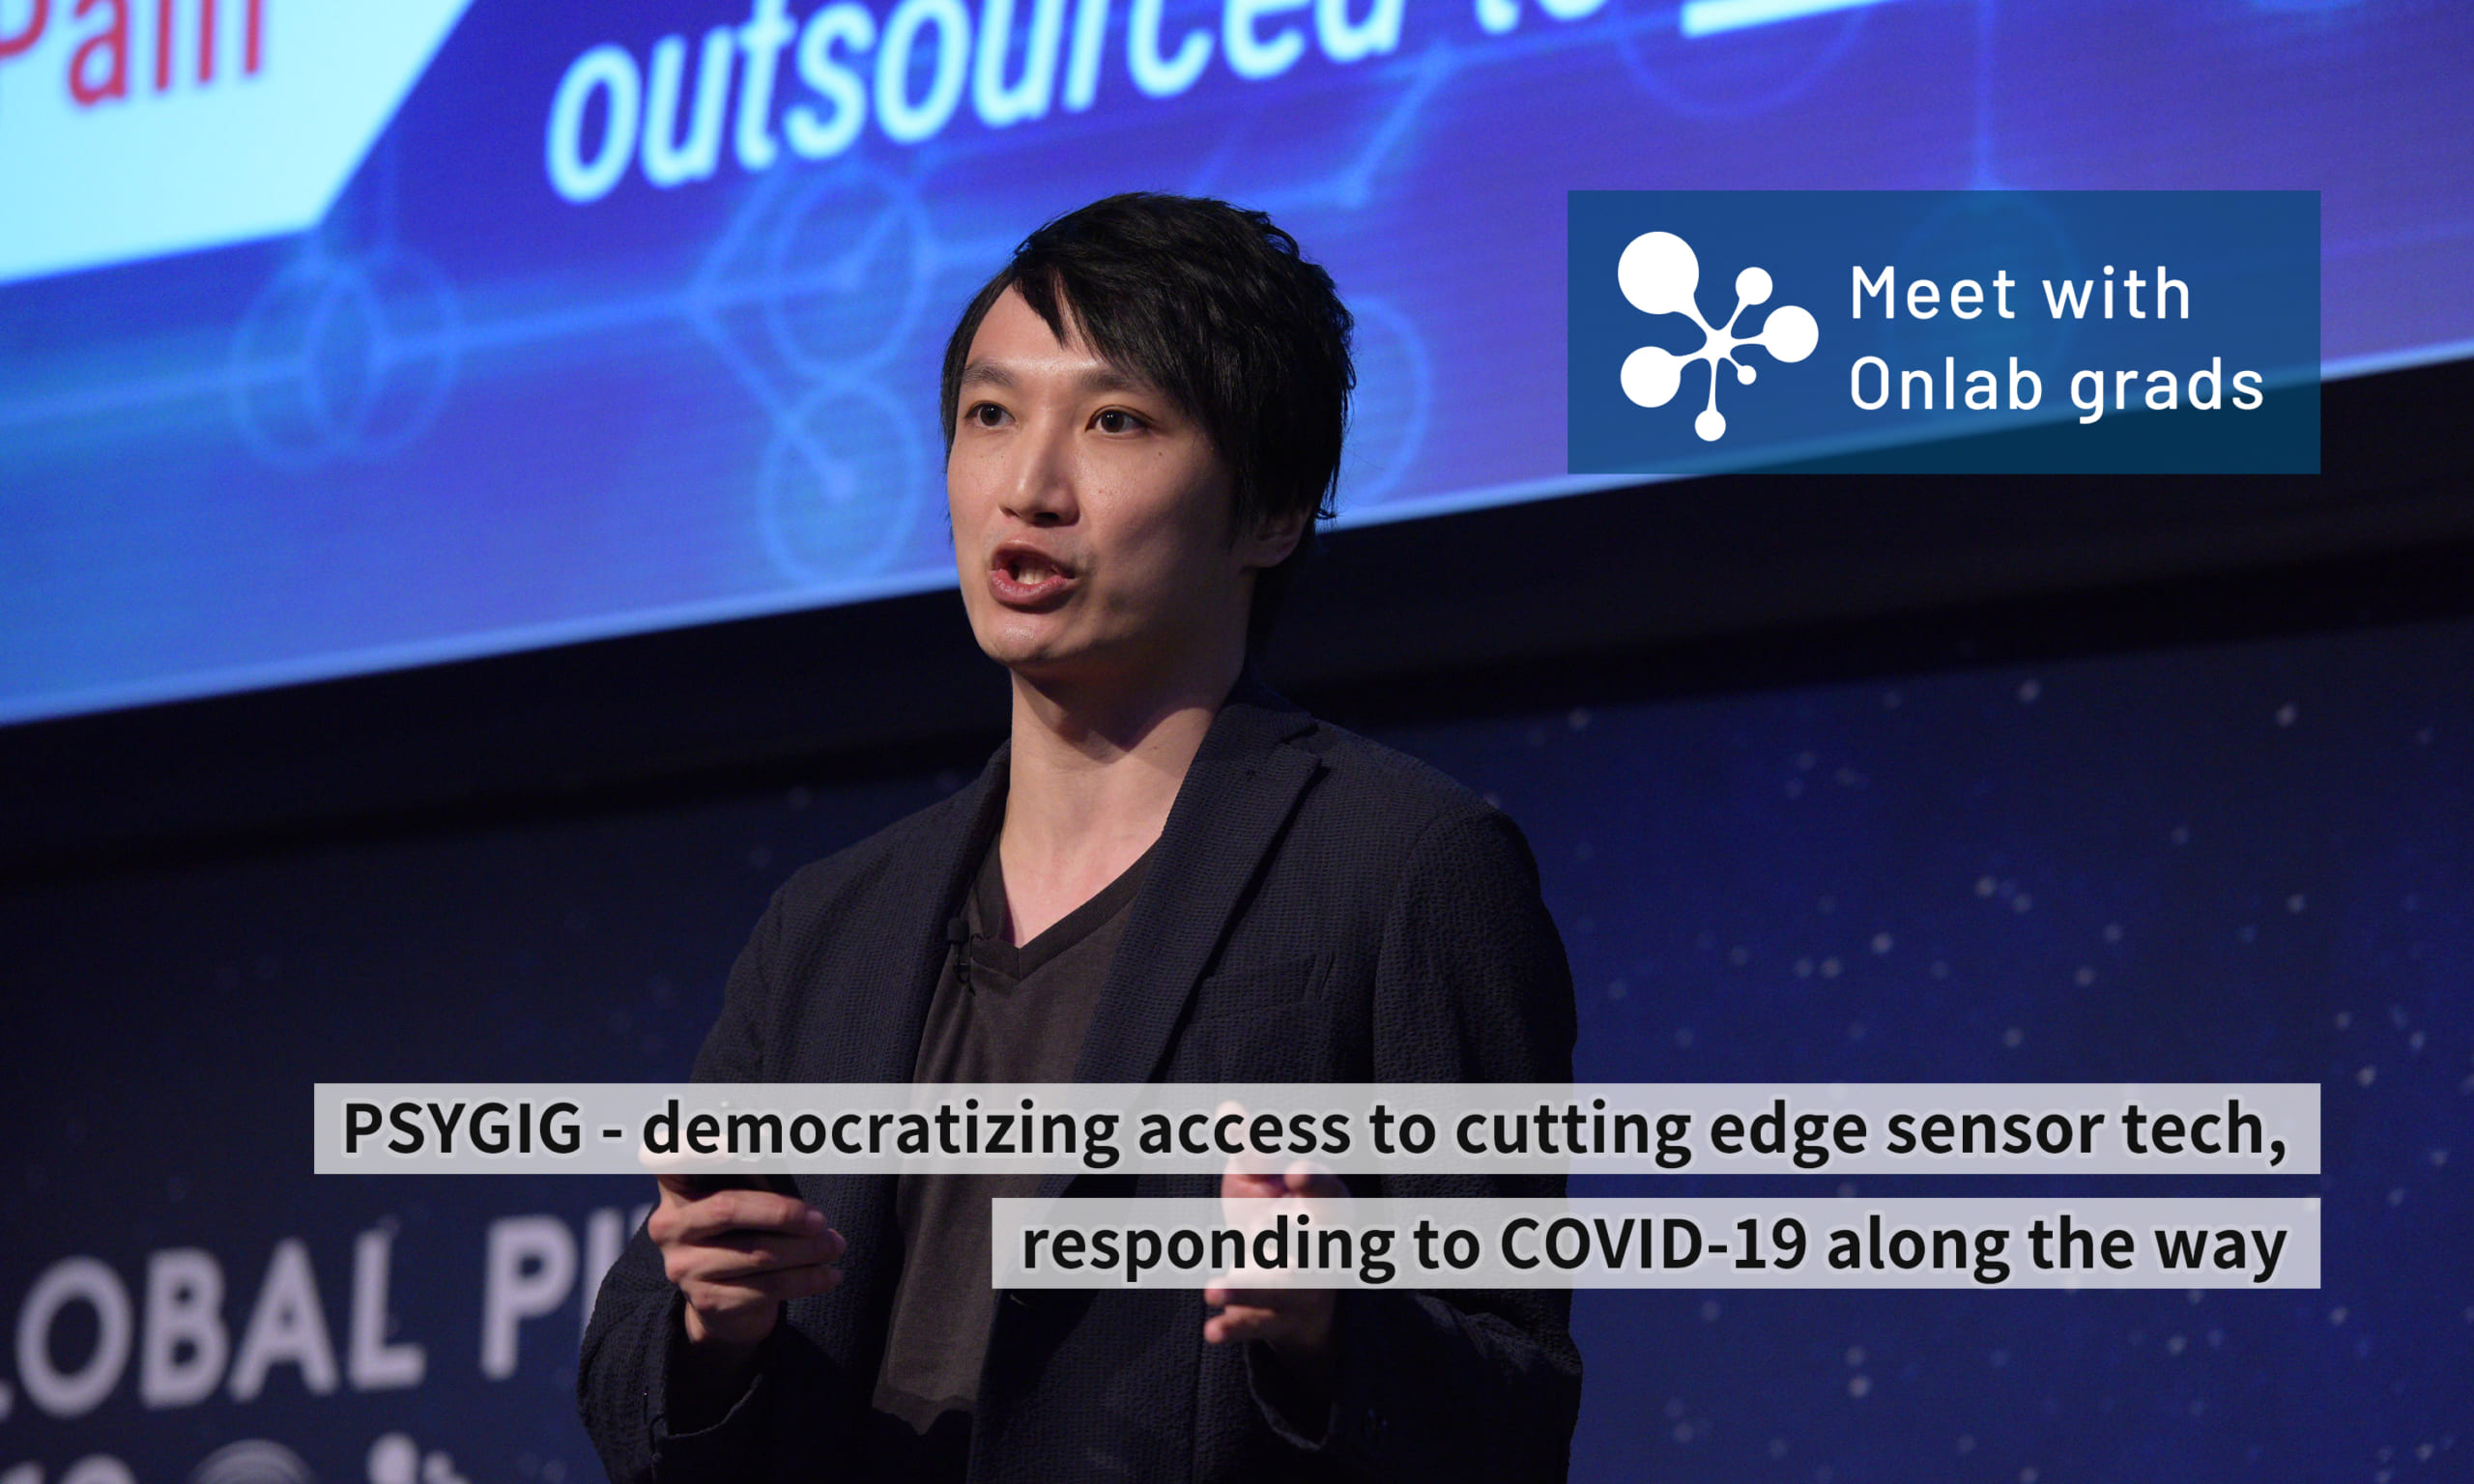 PSYGIG - democratizing access to cutting edge sensor tech, responding to COVID-19 along the way|Meet with Onlab grads vol.22